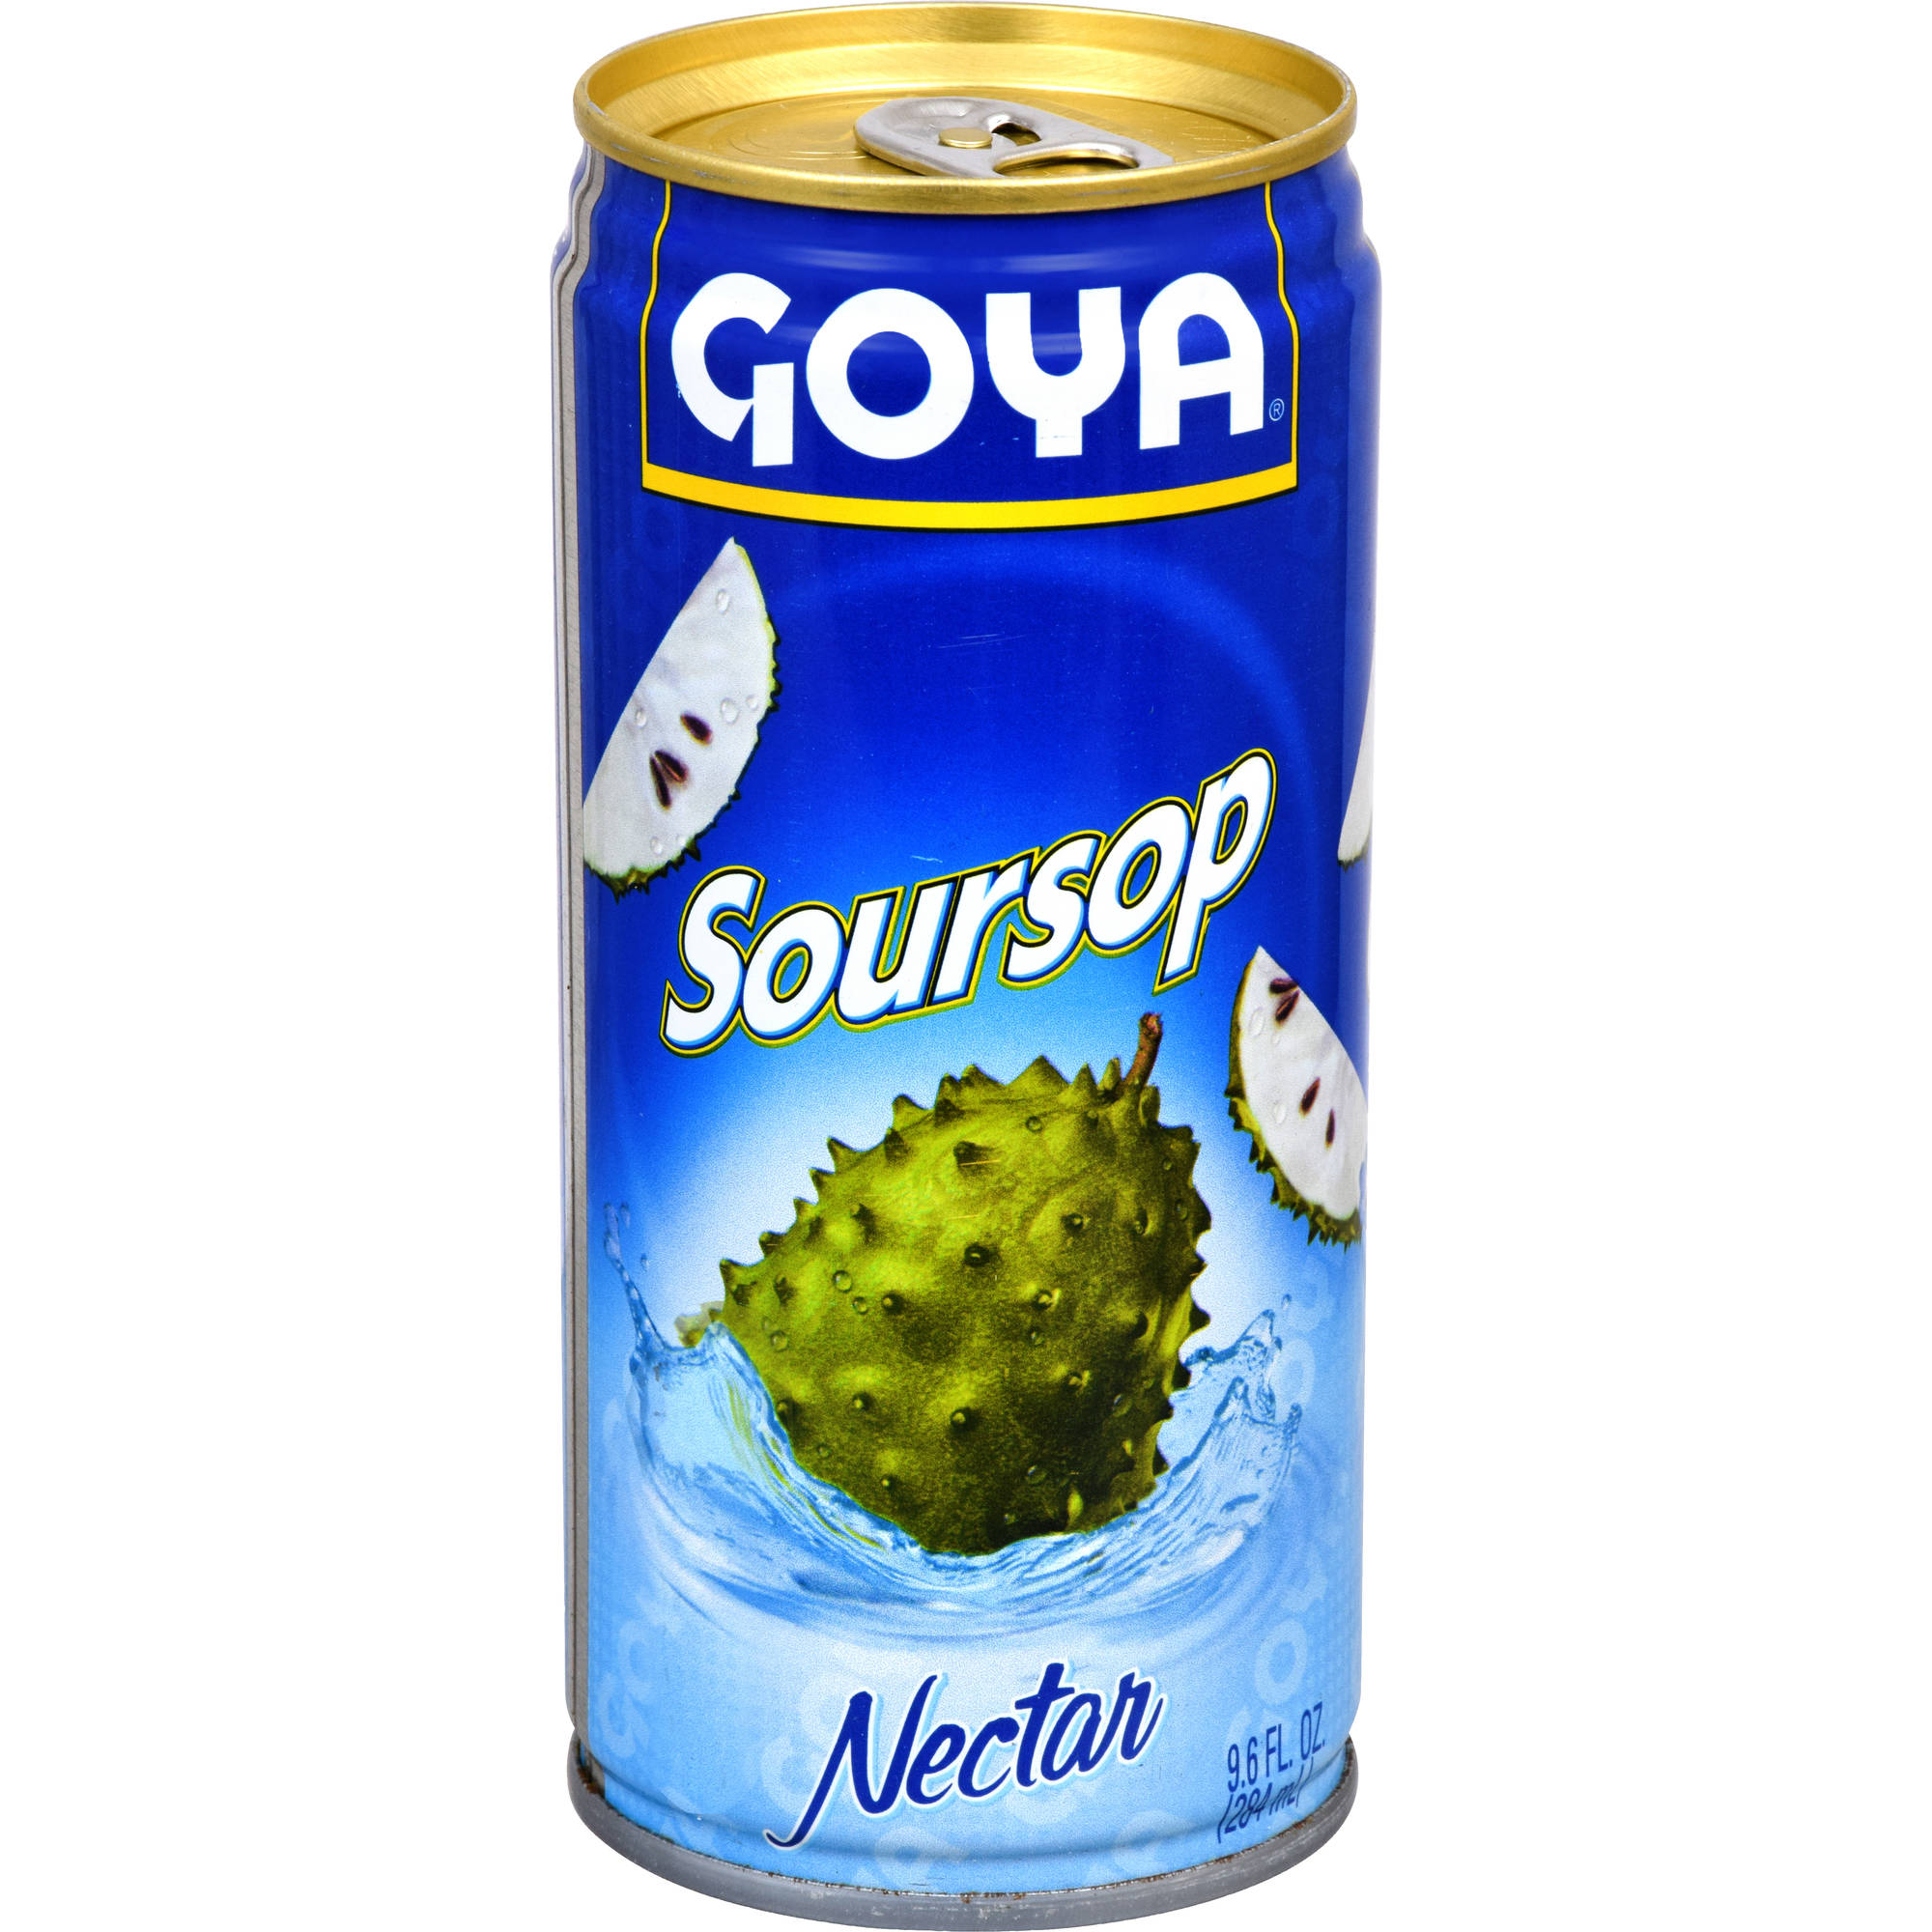 Goya Soursop Nectar Juice Drink, 9.6 fl oz